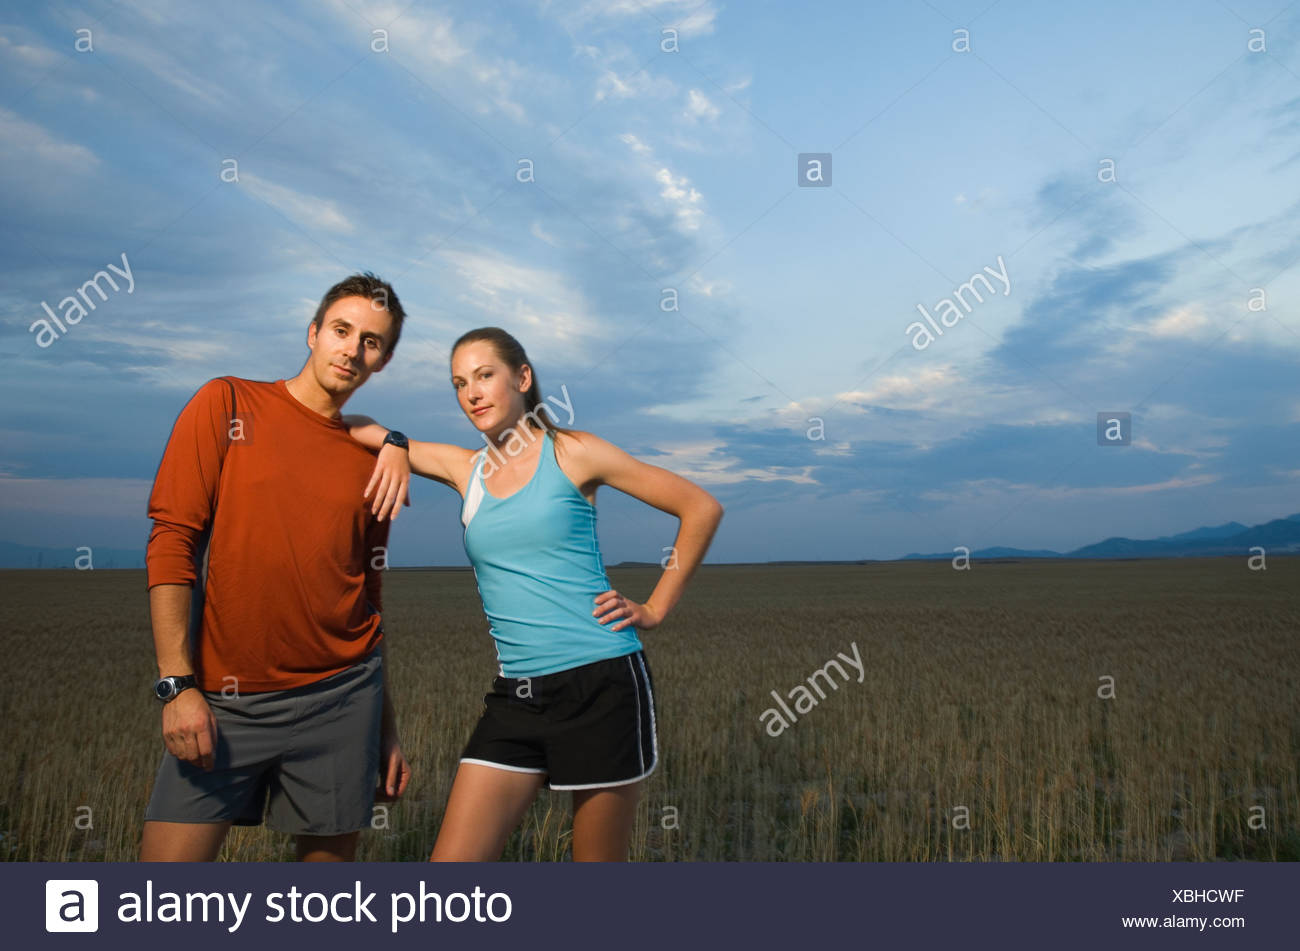 Couple in athletic gear next to field - Stock Image